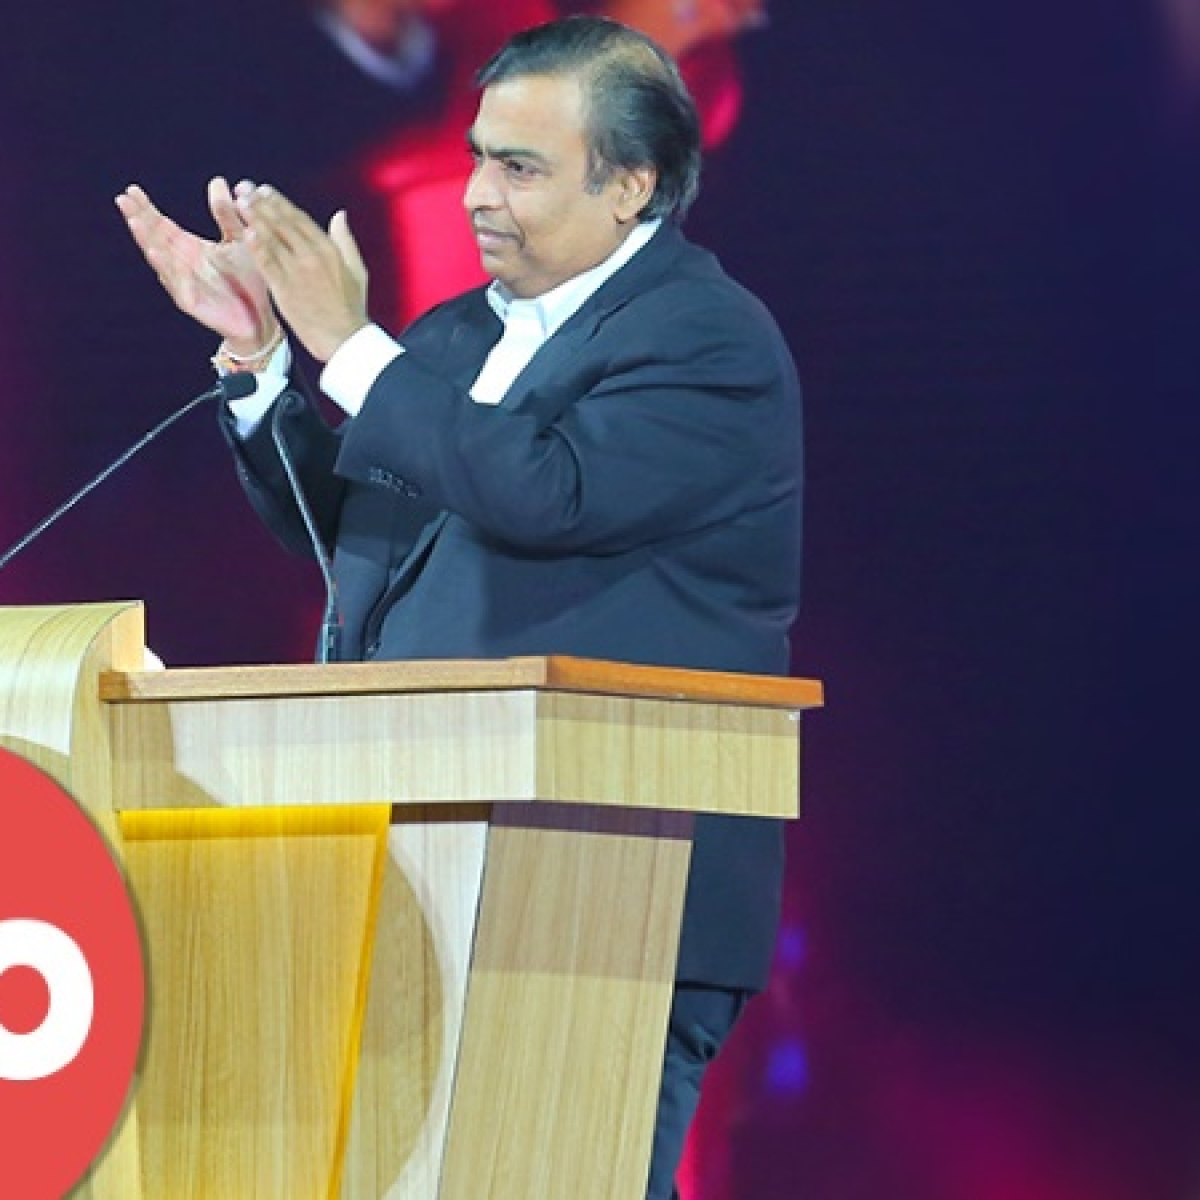 Reliance Industries chairman Mukesh Ambani joins club of world's 10 richest people